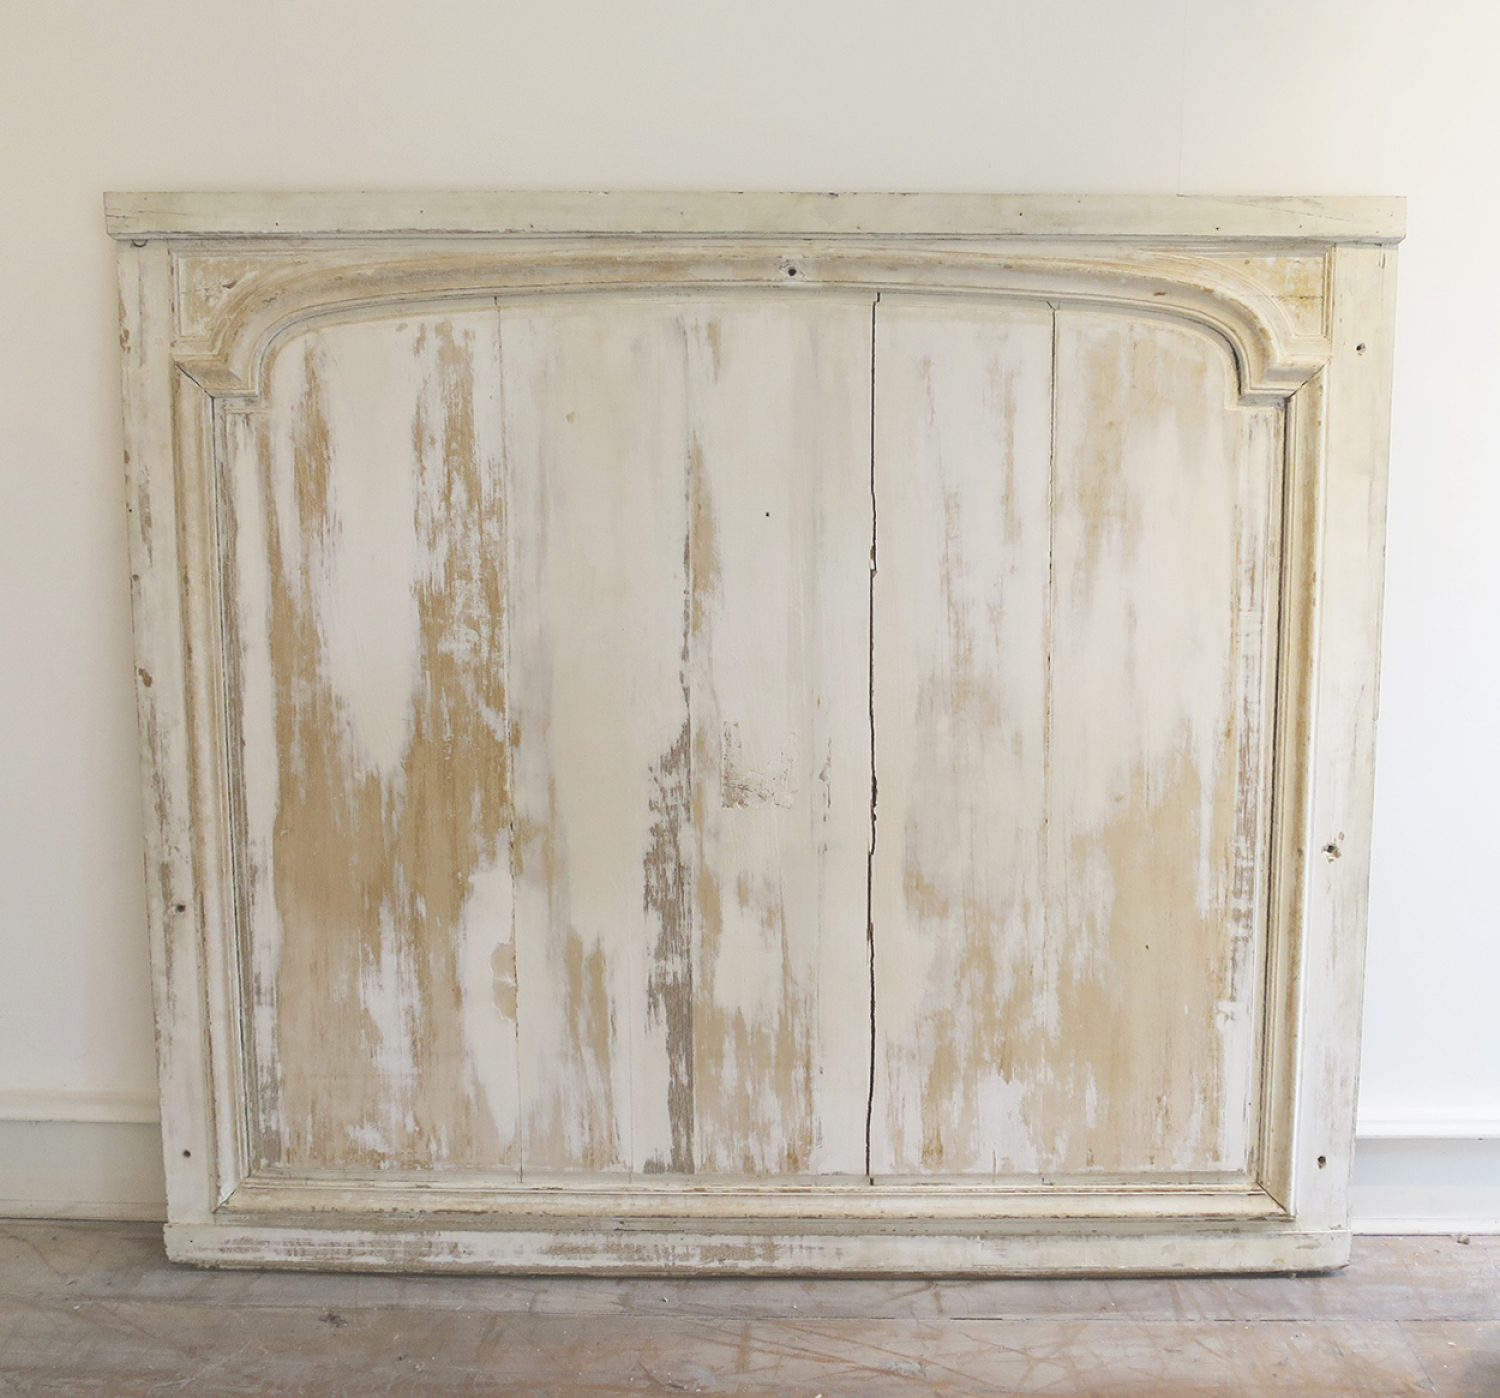 Large 18th c French Panel with remains of old paint - circa 1750